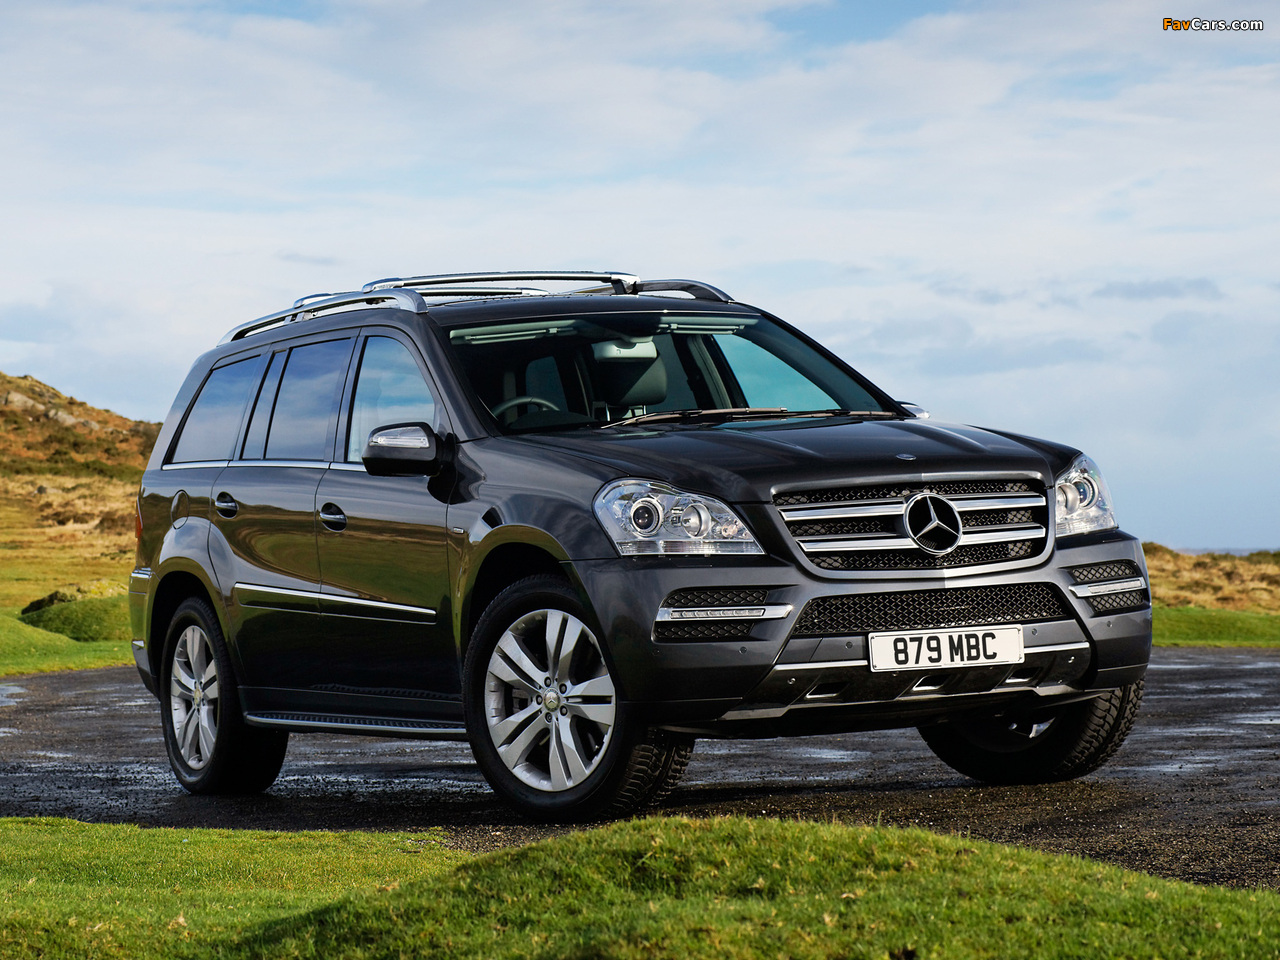 Photos of mercedes benz gl 350 cdi uk spec x164 2009 12 for Mercedes benz gl 350 cdi